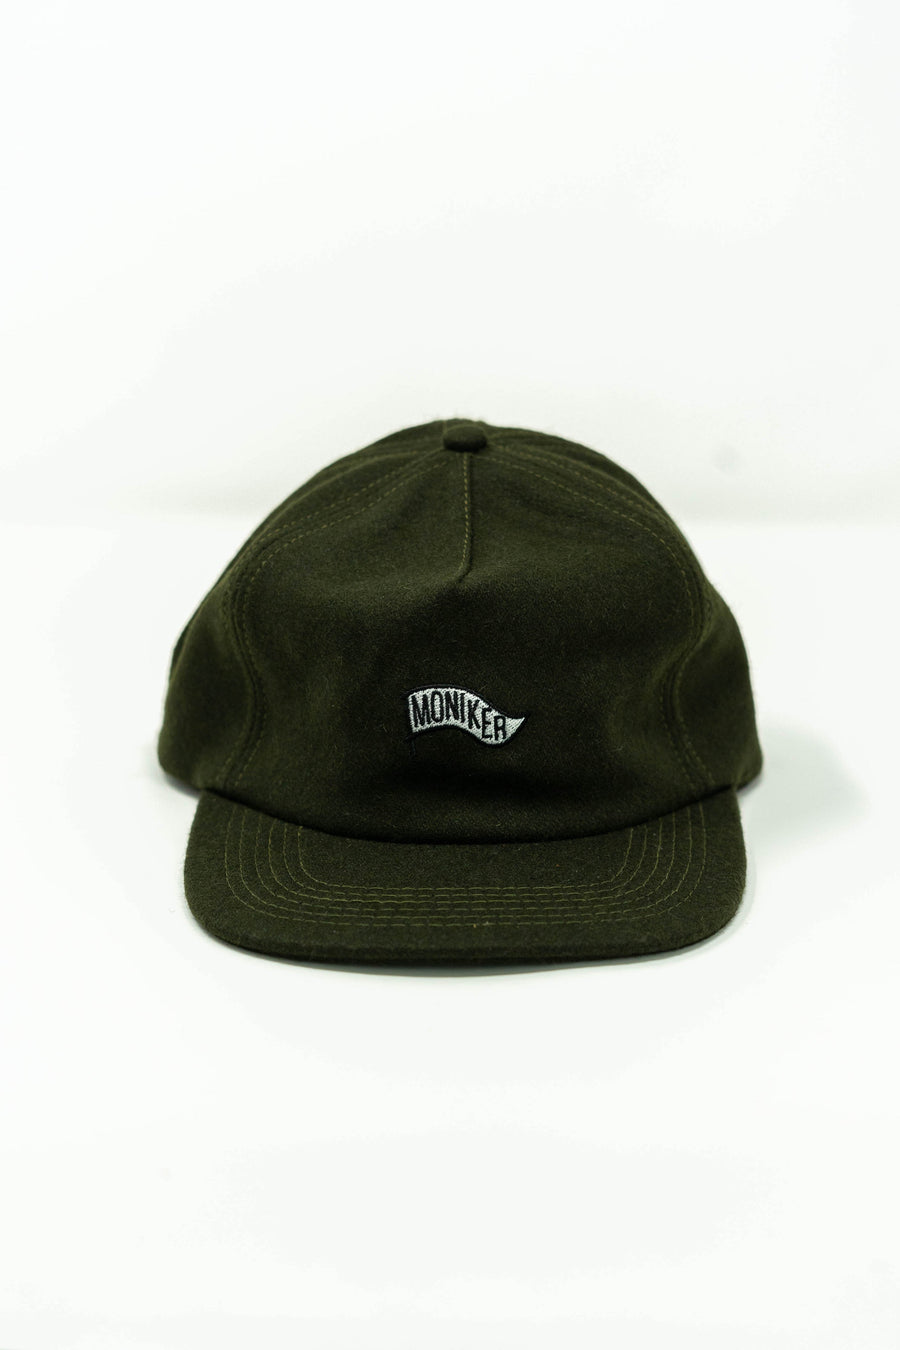 Moniker Flag Hat in Olive Wool